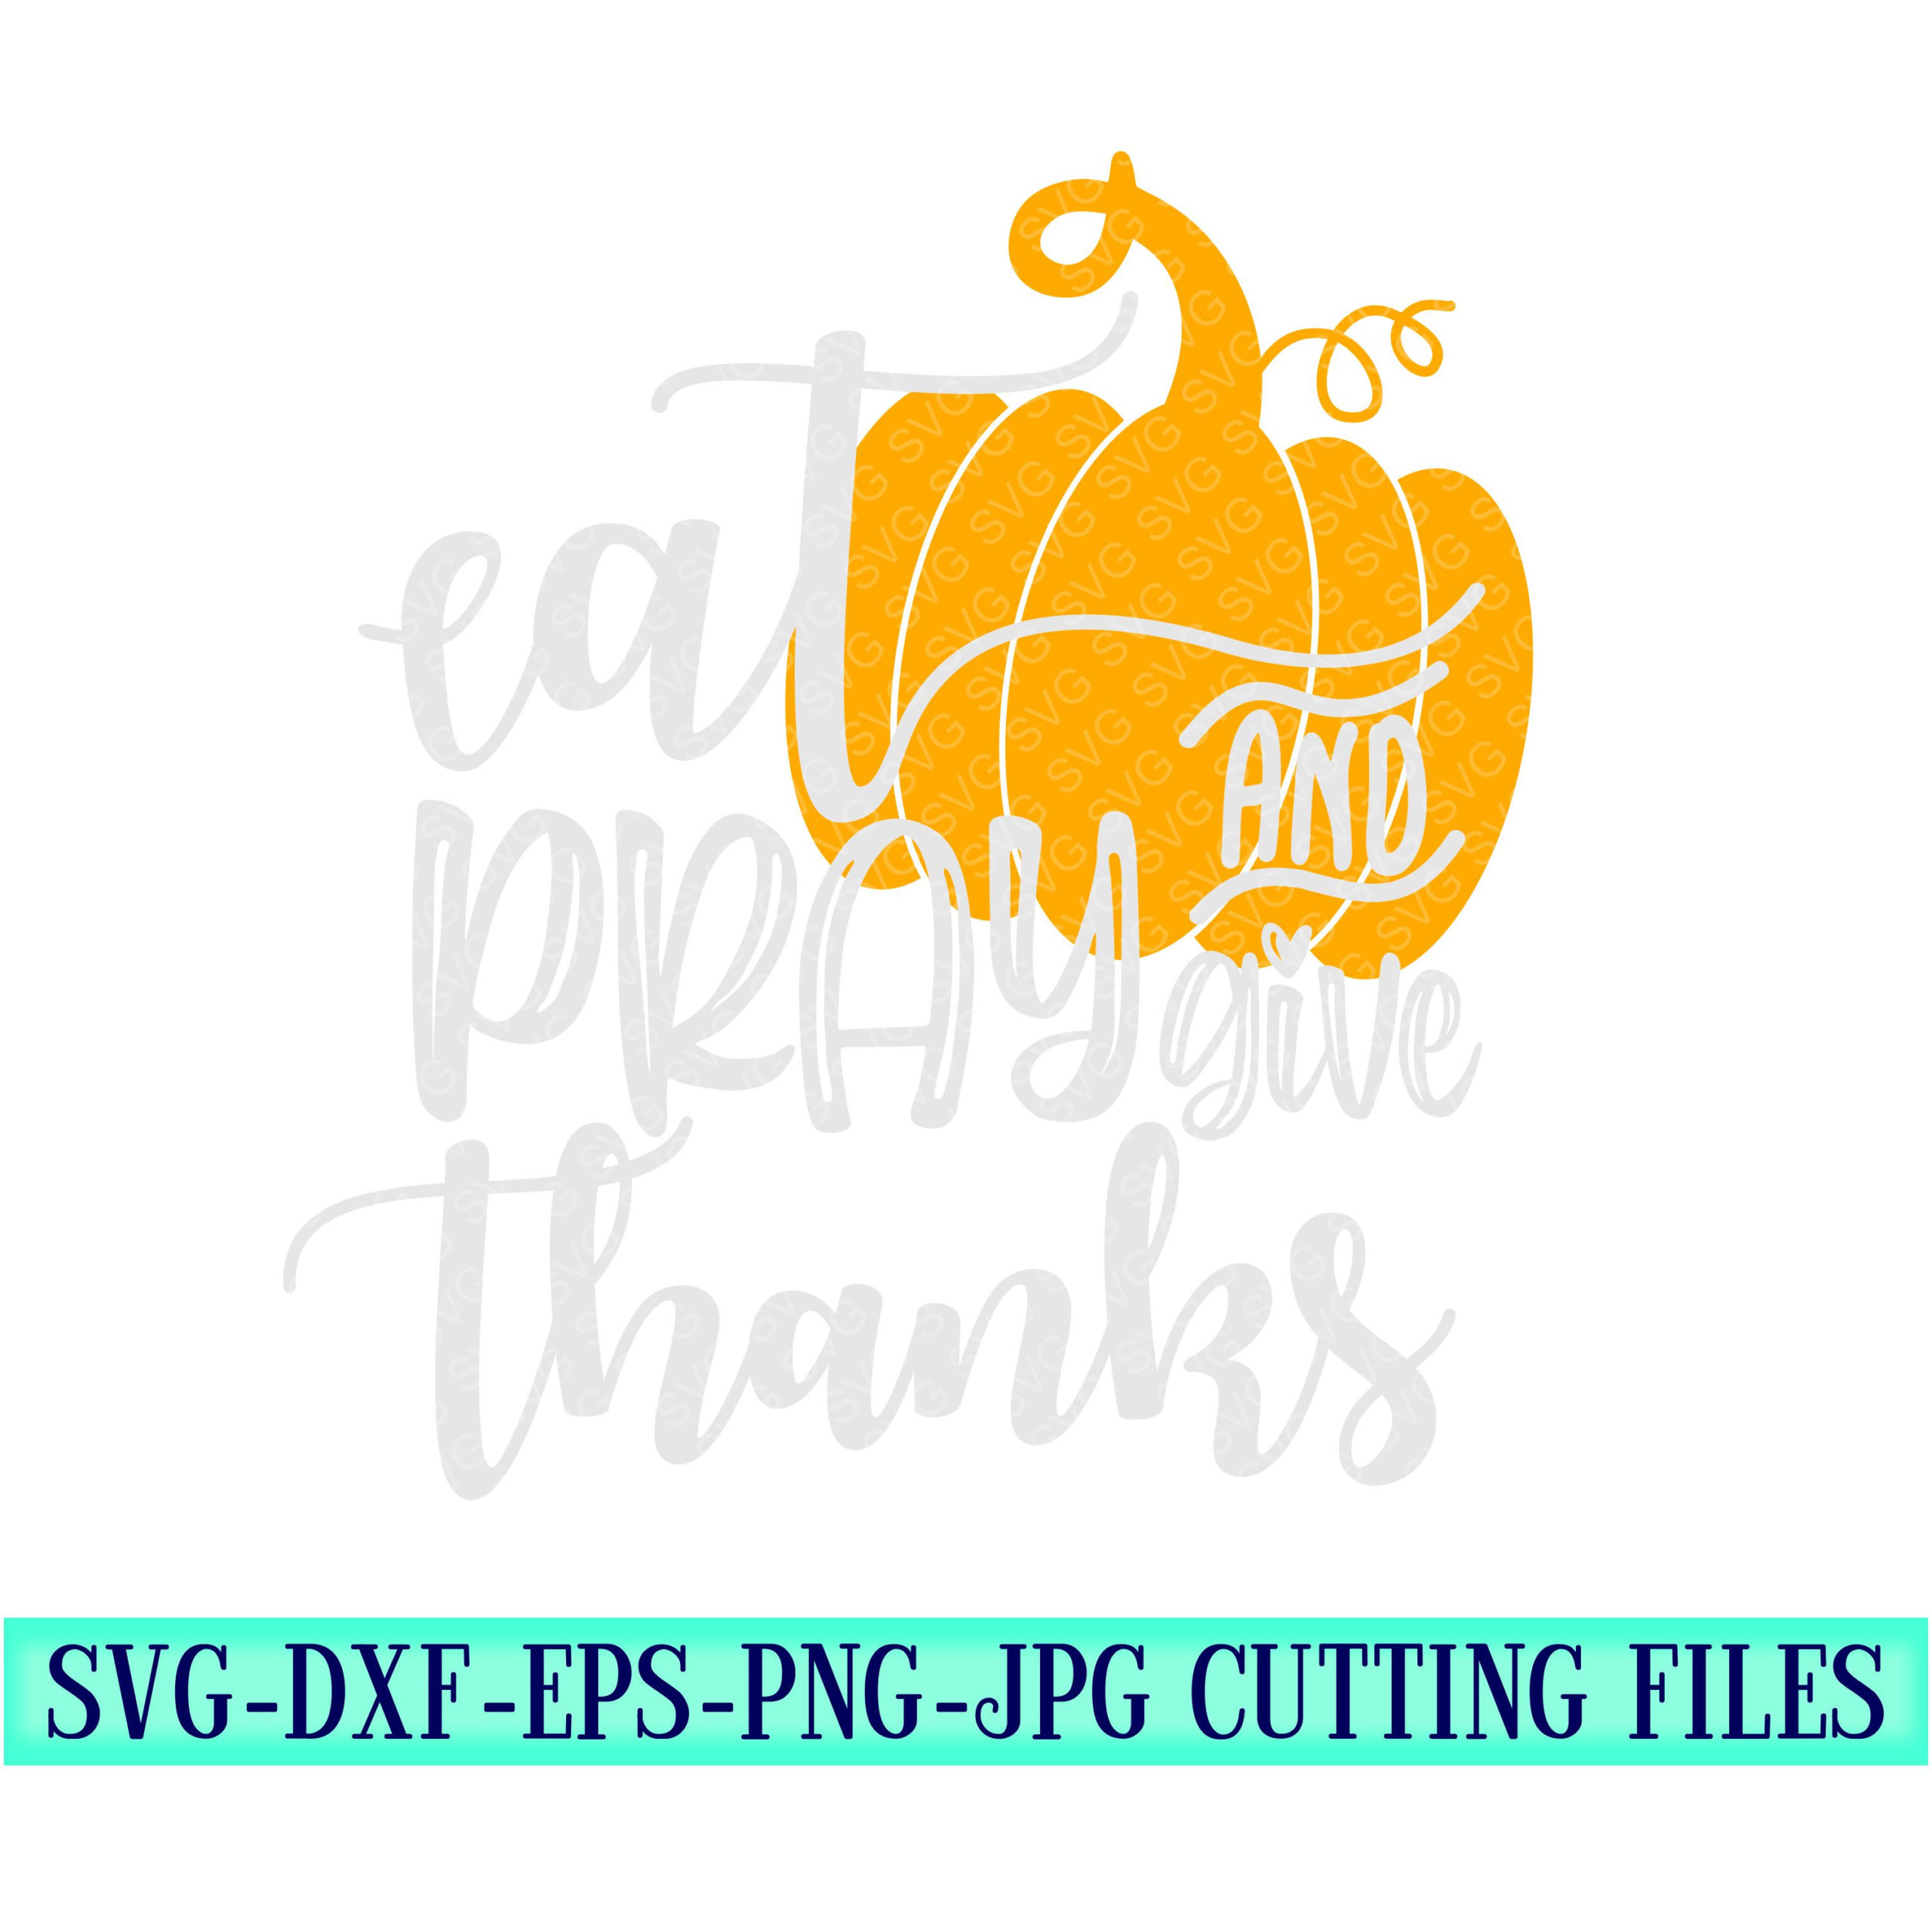 Eat-pray-and-give-thanks-svg-thanksgiving-svg-thankful-svg-thanksgiving-svg-designsthanksgiving-cut-filesvg-for-cricutsvg-for-mobile-5f6f6ee0